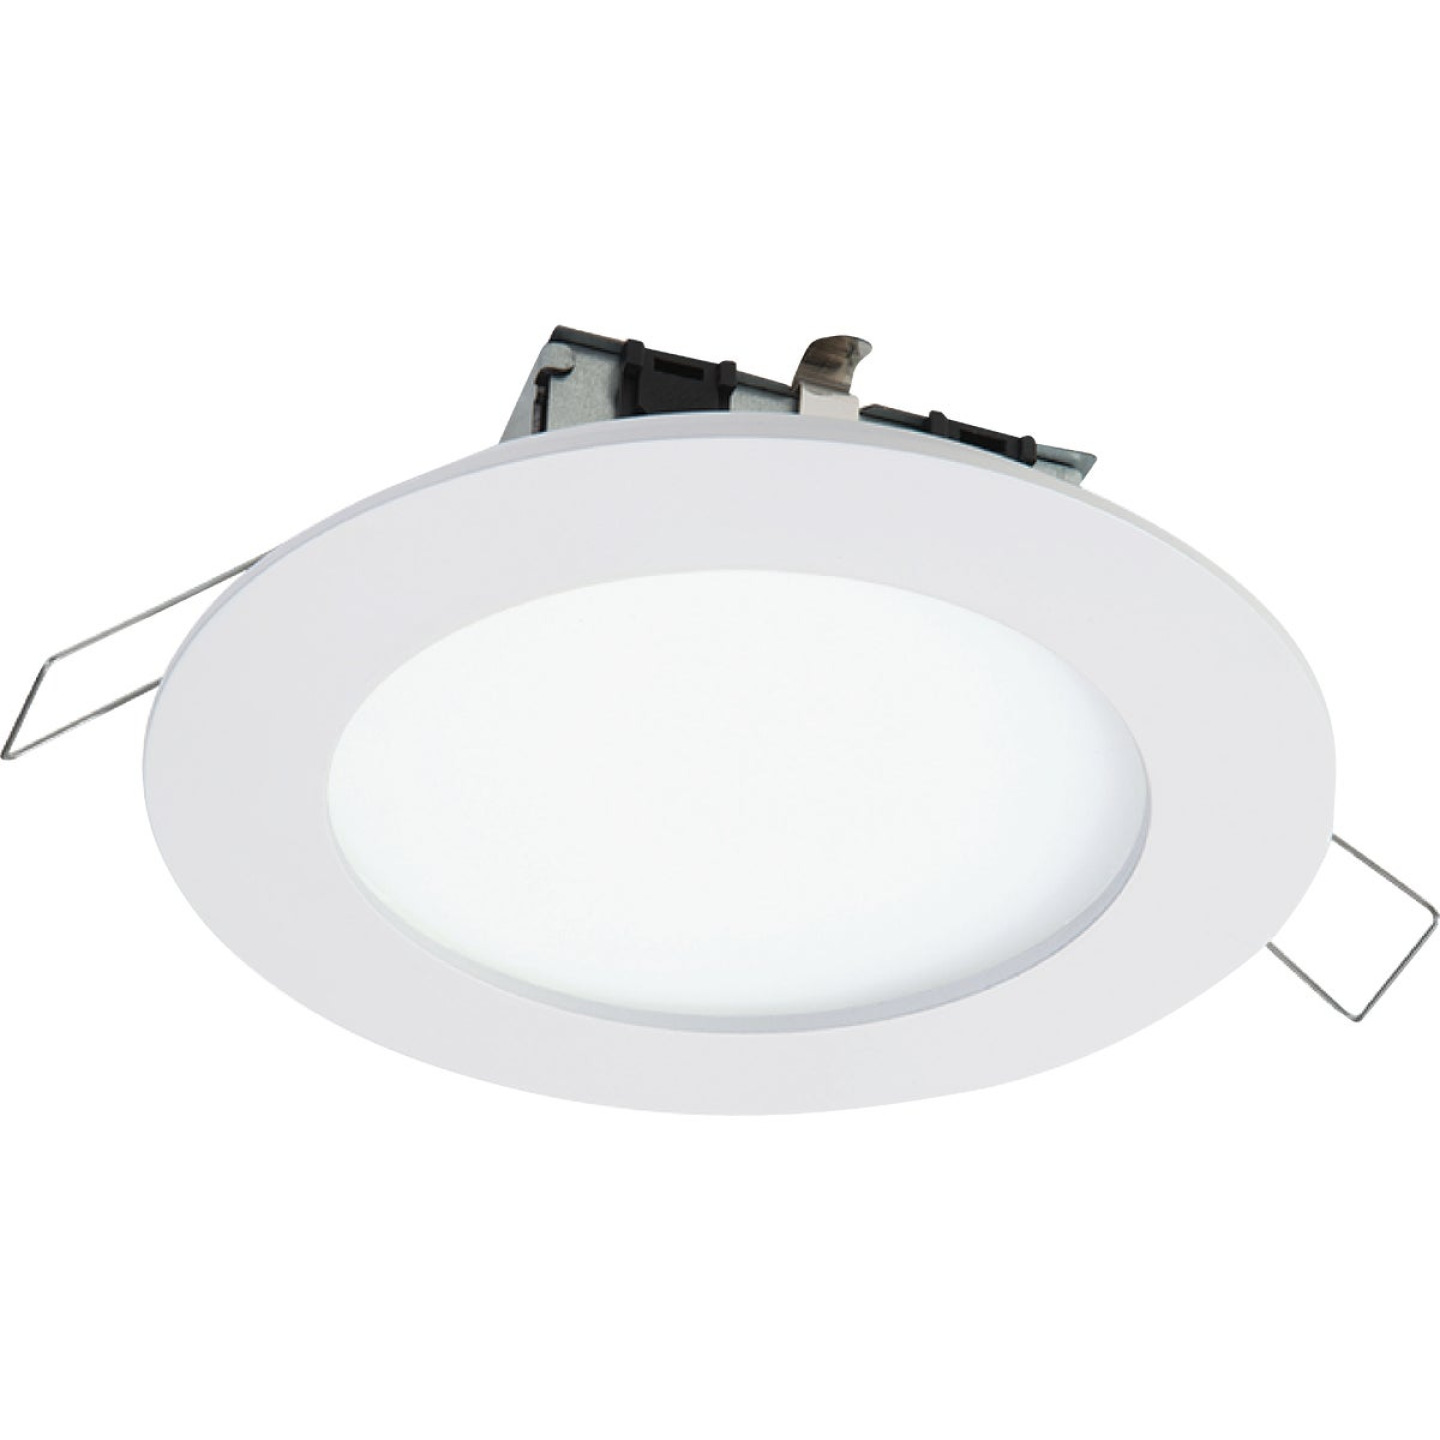 Halo 6 In. Retrofit IC/Non-IC Rated White LED Spring Clip Recessed Light Kit Image 1